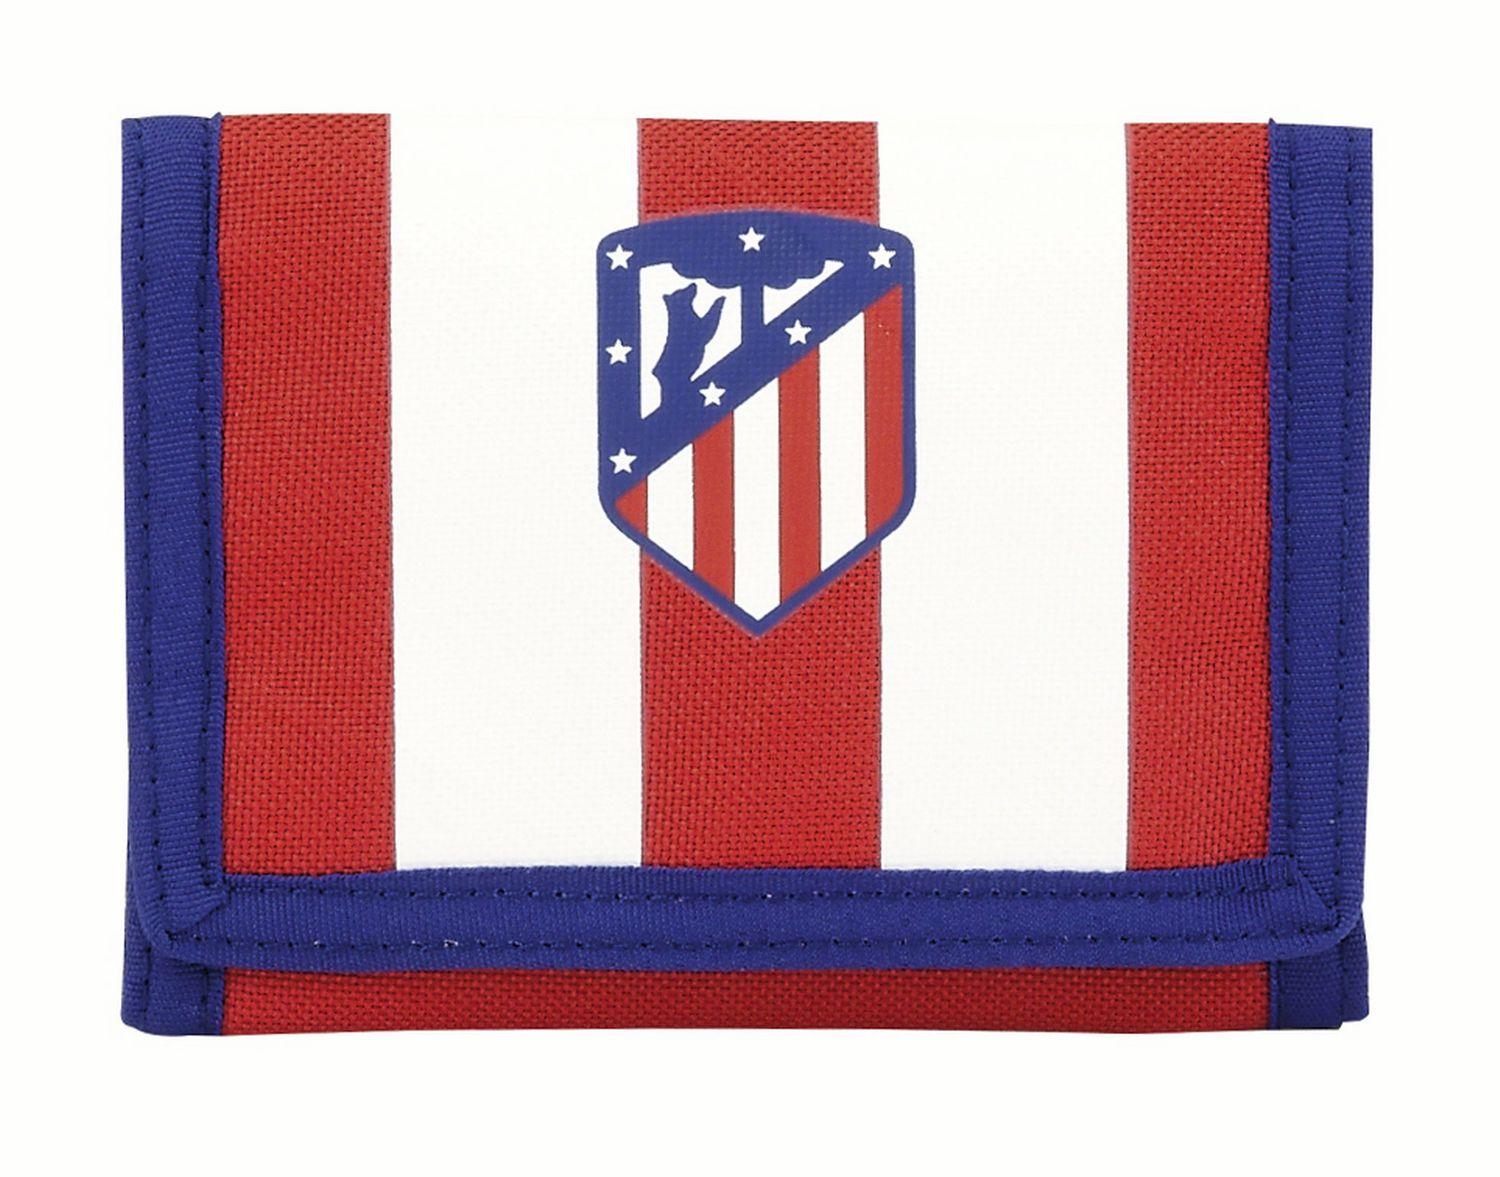 OFFICIAL Atletico de Madrid Wallet – image 1